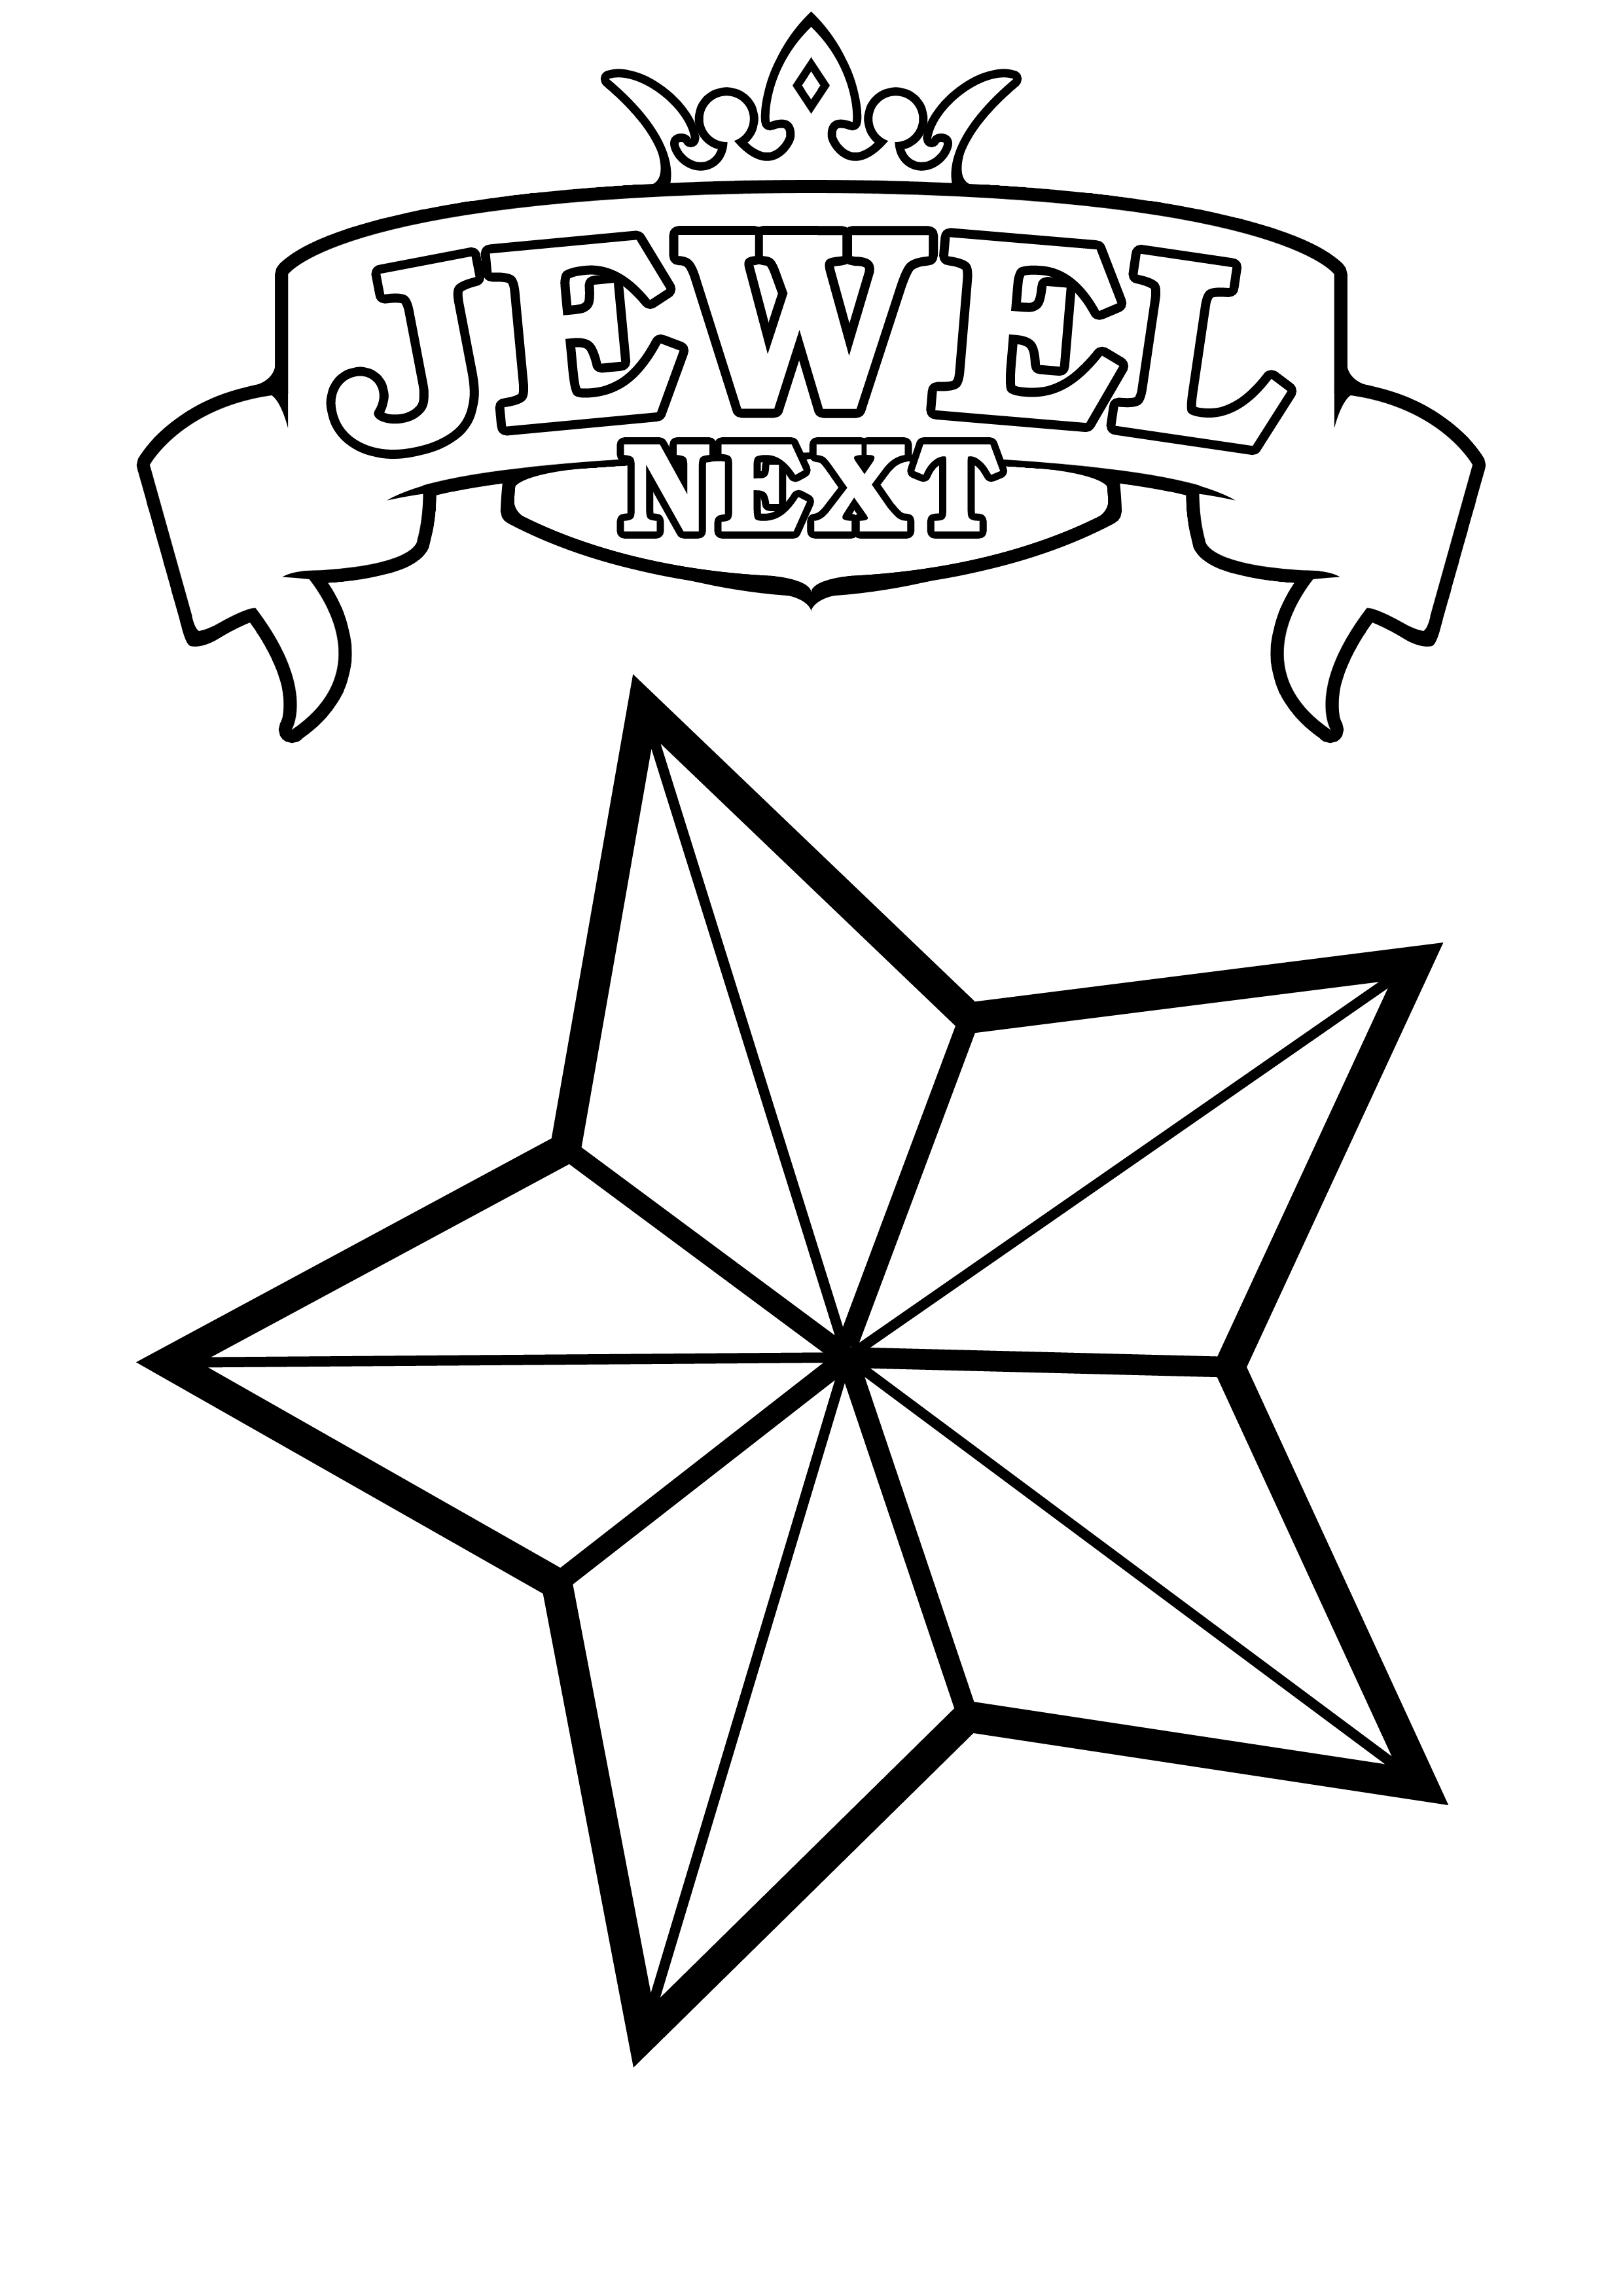 printable pictures of stars free printable star coloring pages for kids printable pictures of stars